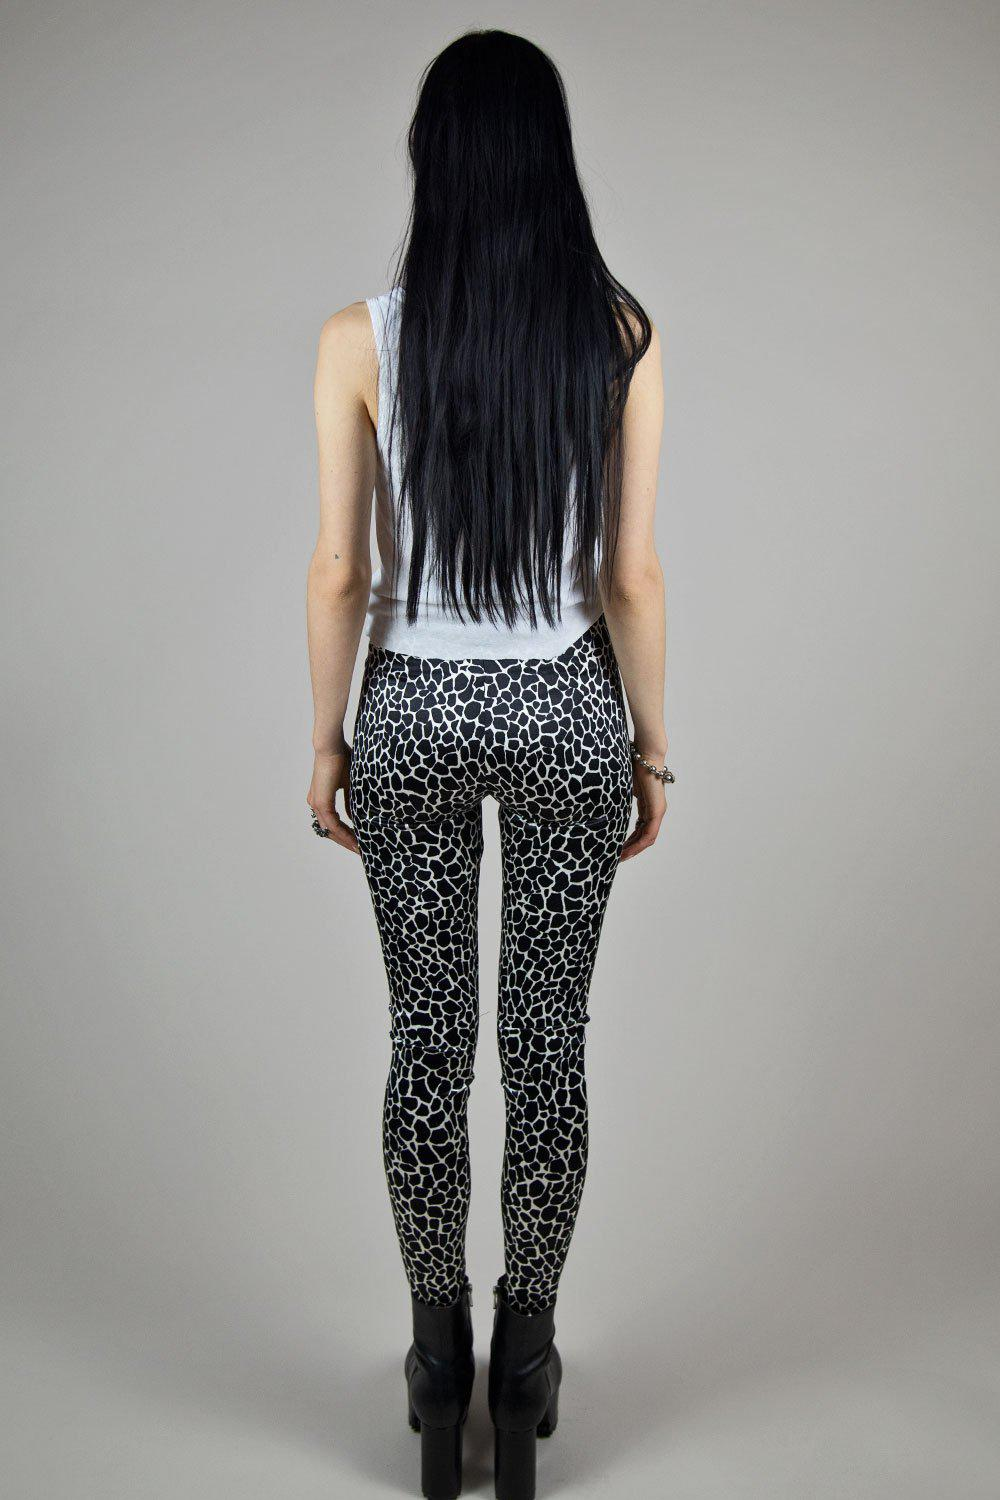 Wild Animal Nylon Spandex Grommet Pants